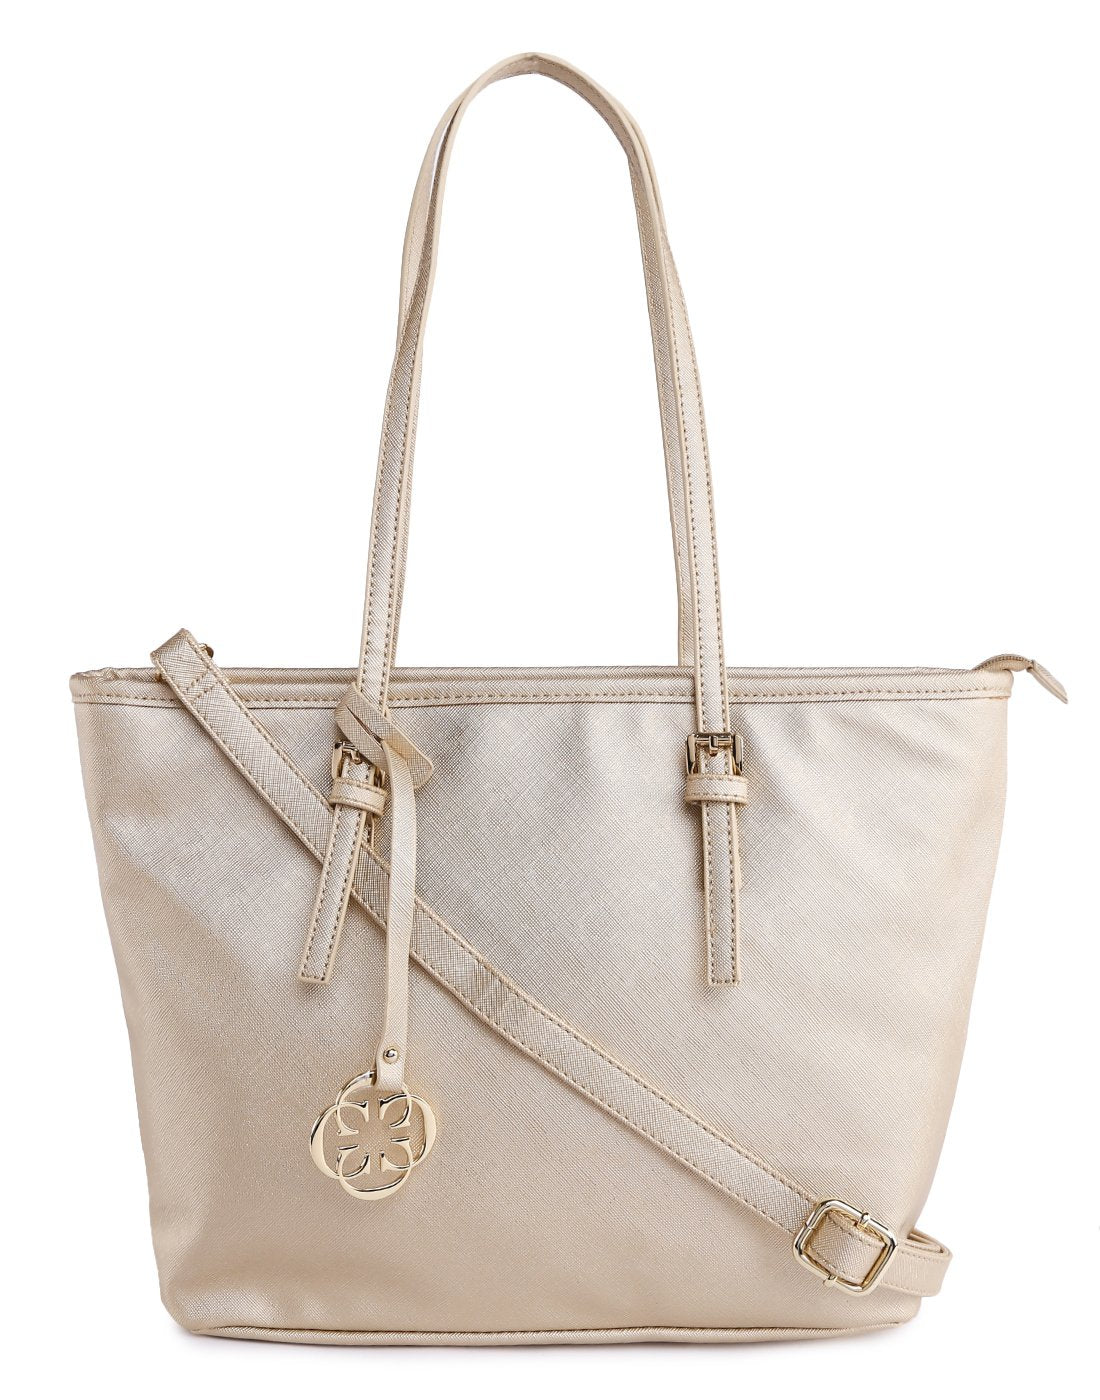 Lara Shoulder Tote Bag